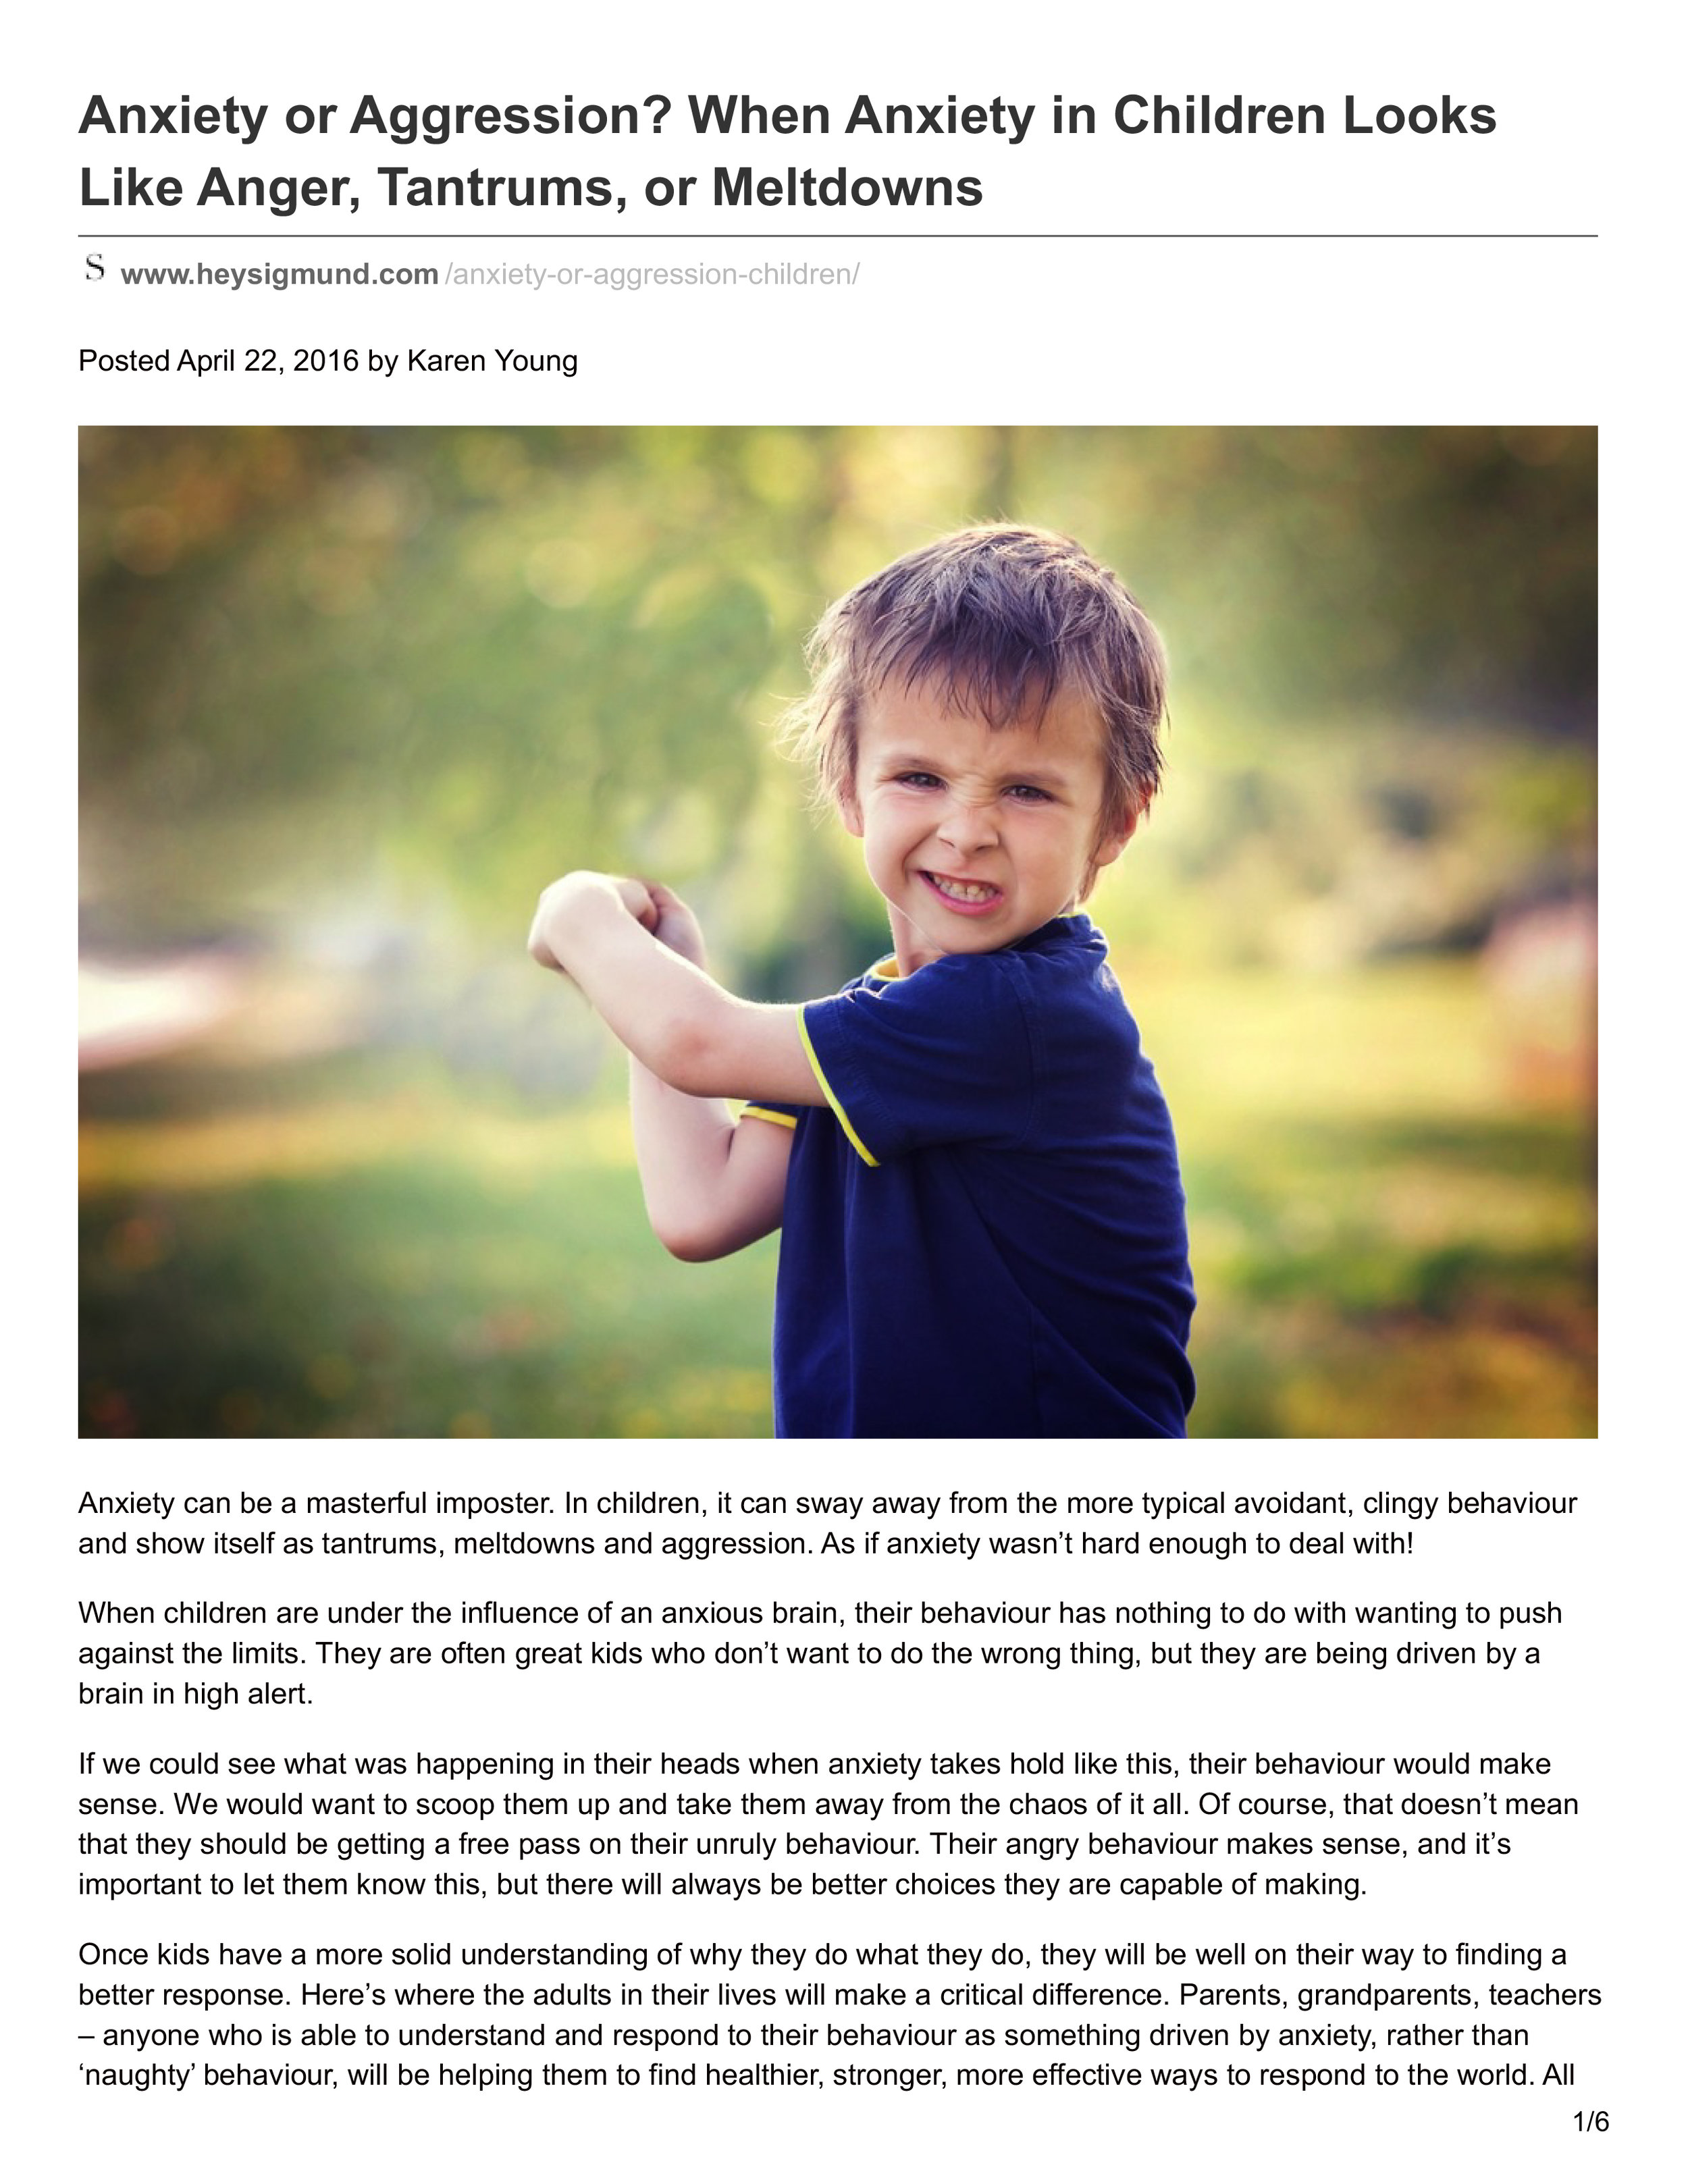 heysigmund.com-Anxiety or Aggression When Anxiety in Children Looks Like Anger Tantrums or Meltdowns-1.jpg